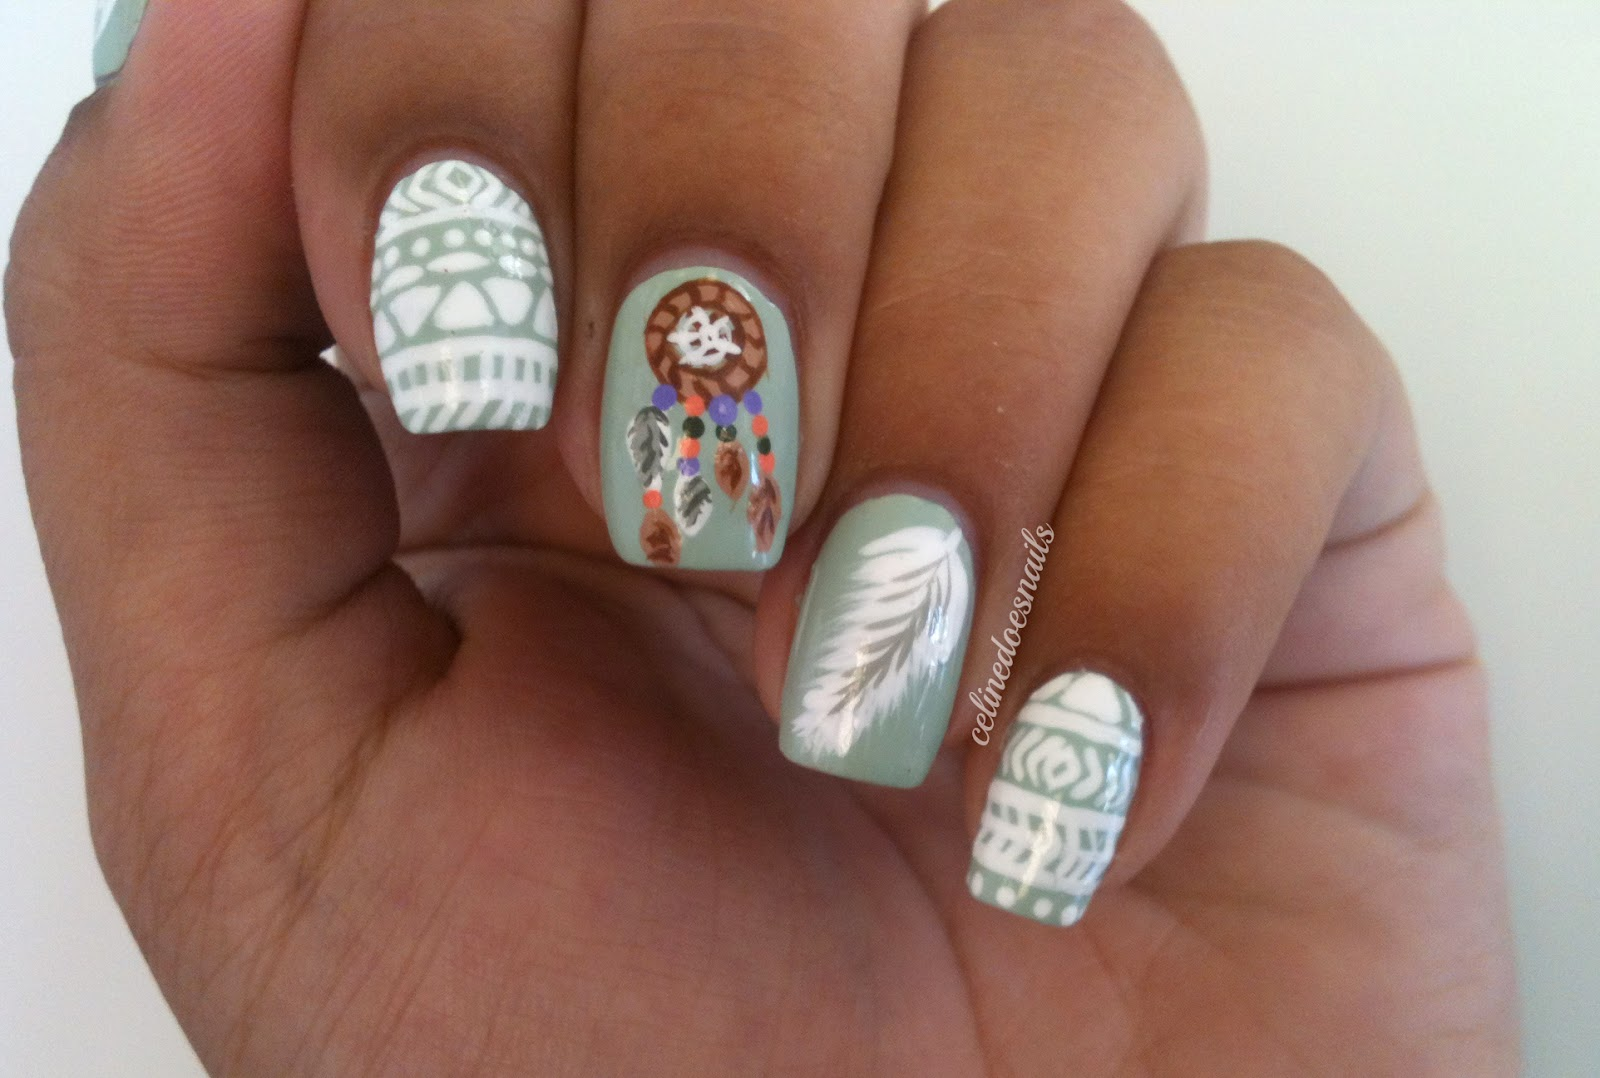 Nail art style dreamcatcher tribal nail art if anything the pictures i took of these nails turned out really good and usually that doesnt happen prinsesfo Image collections